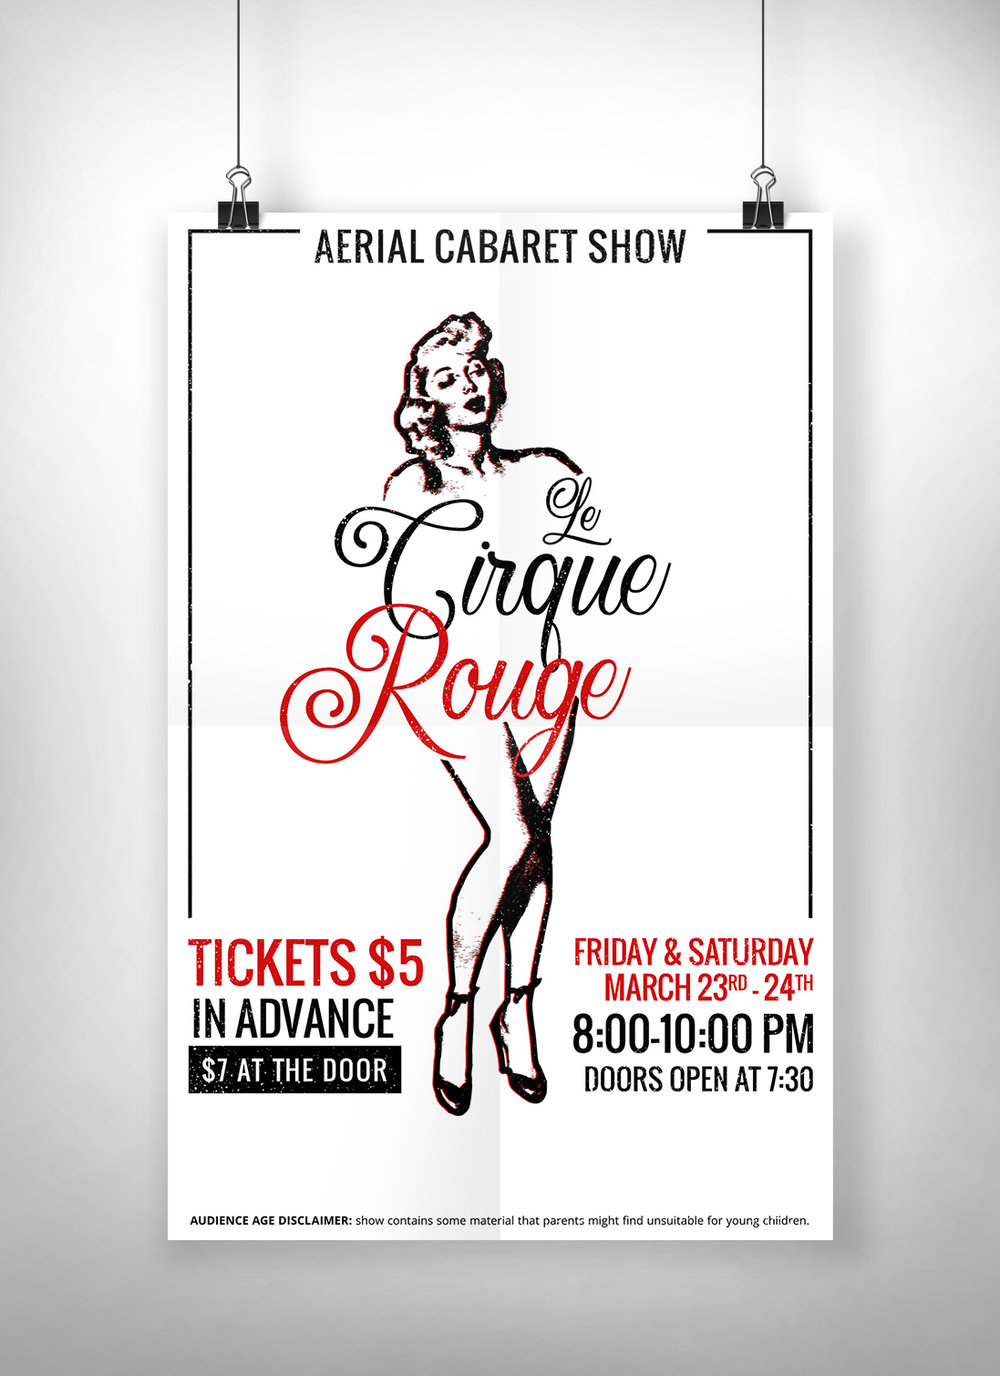 Le-Cirque-Rouge-Poster-Mockup.jpg